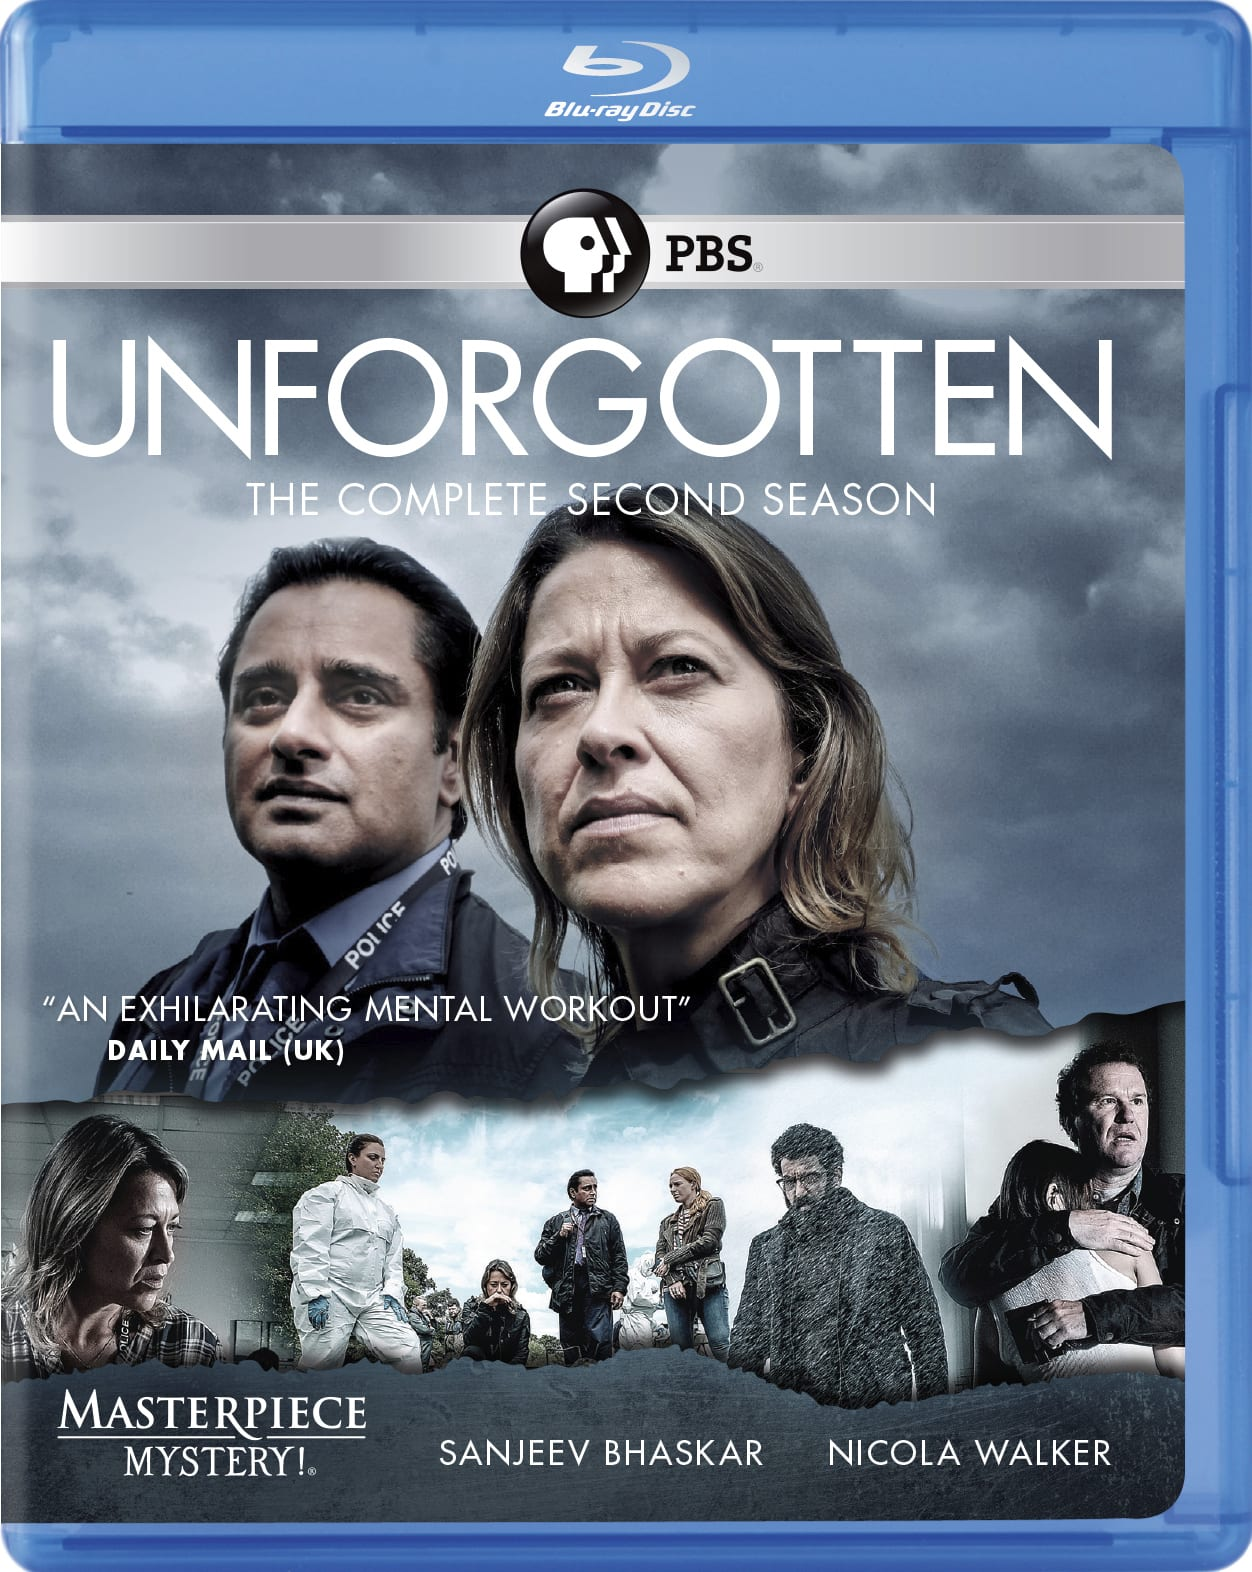 Masterpiece Mystery!: Unforgotten - The Complete Second Season [Blu-ray]